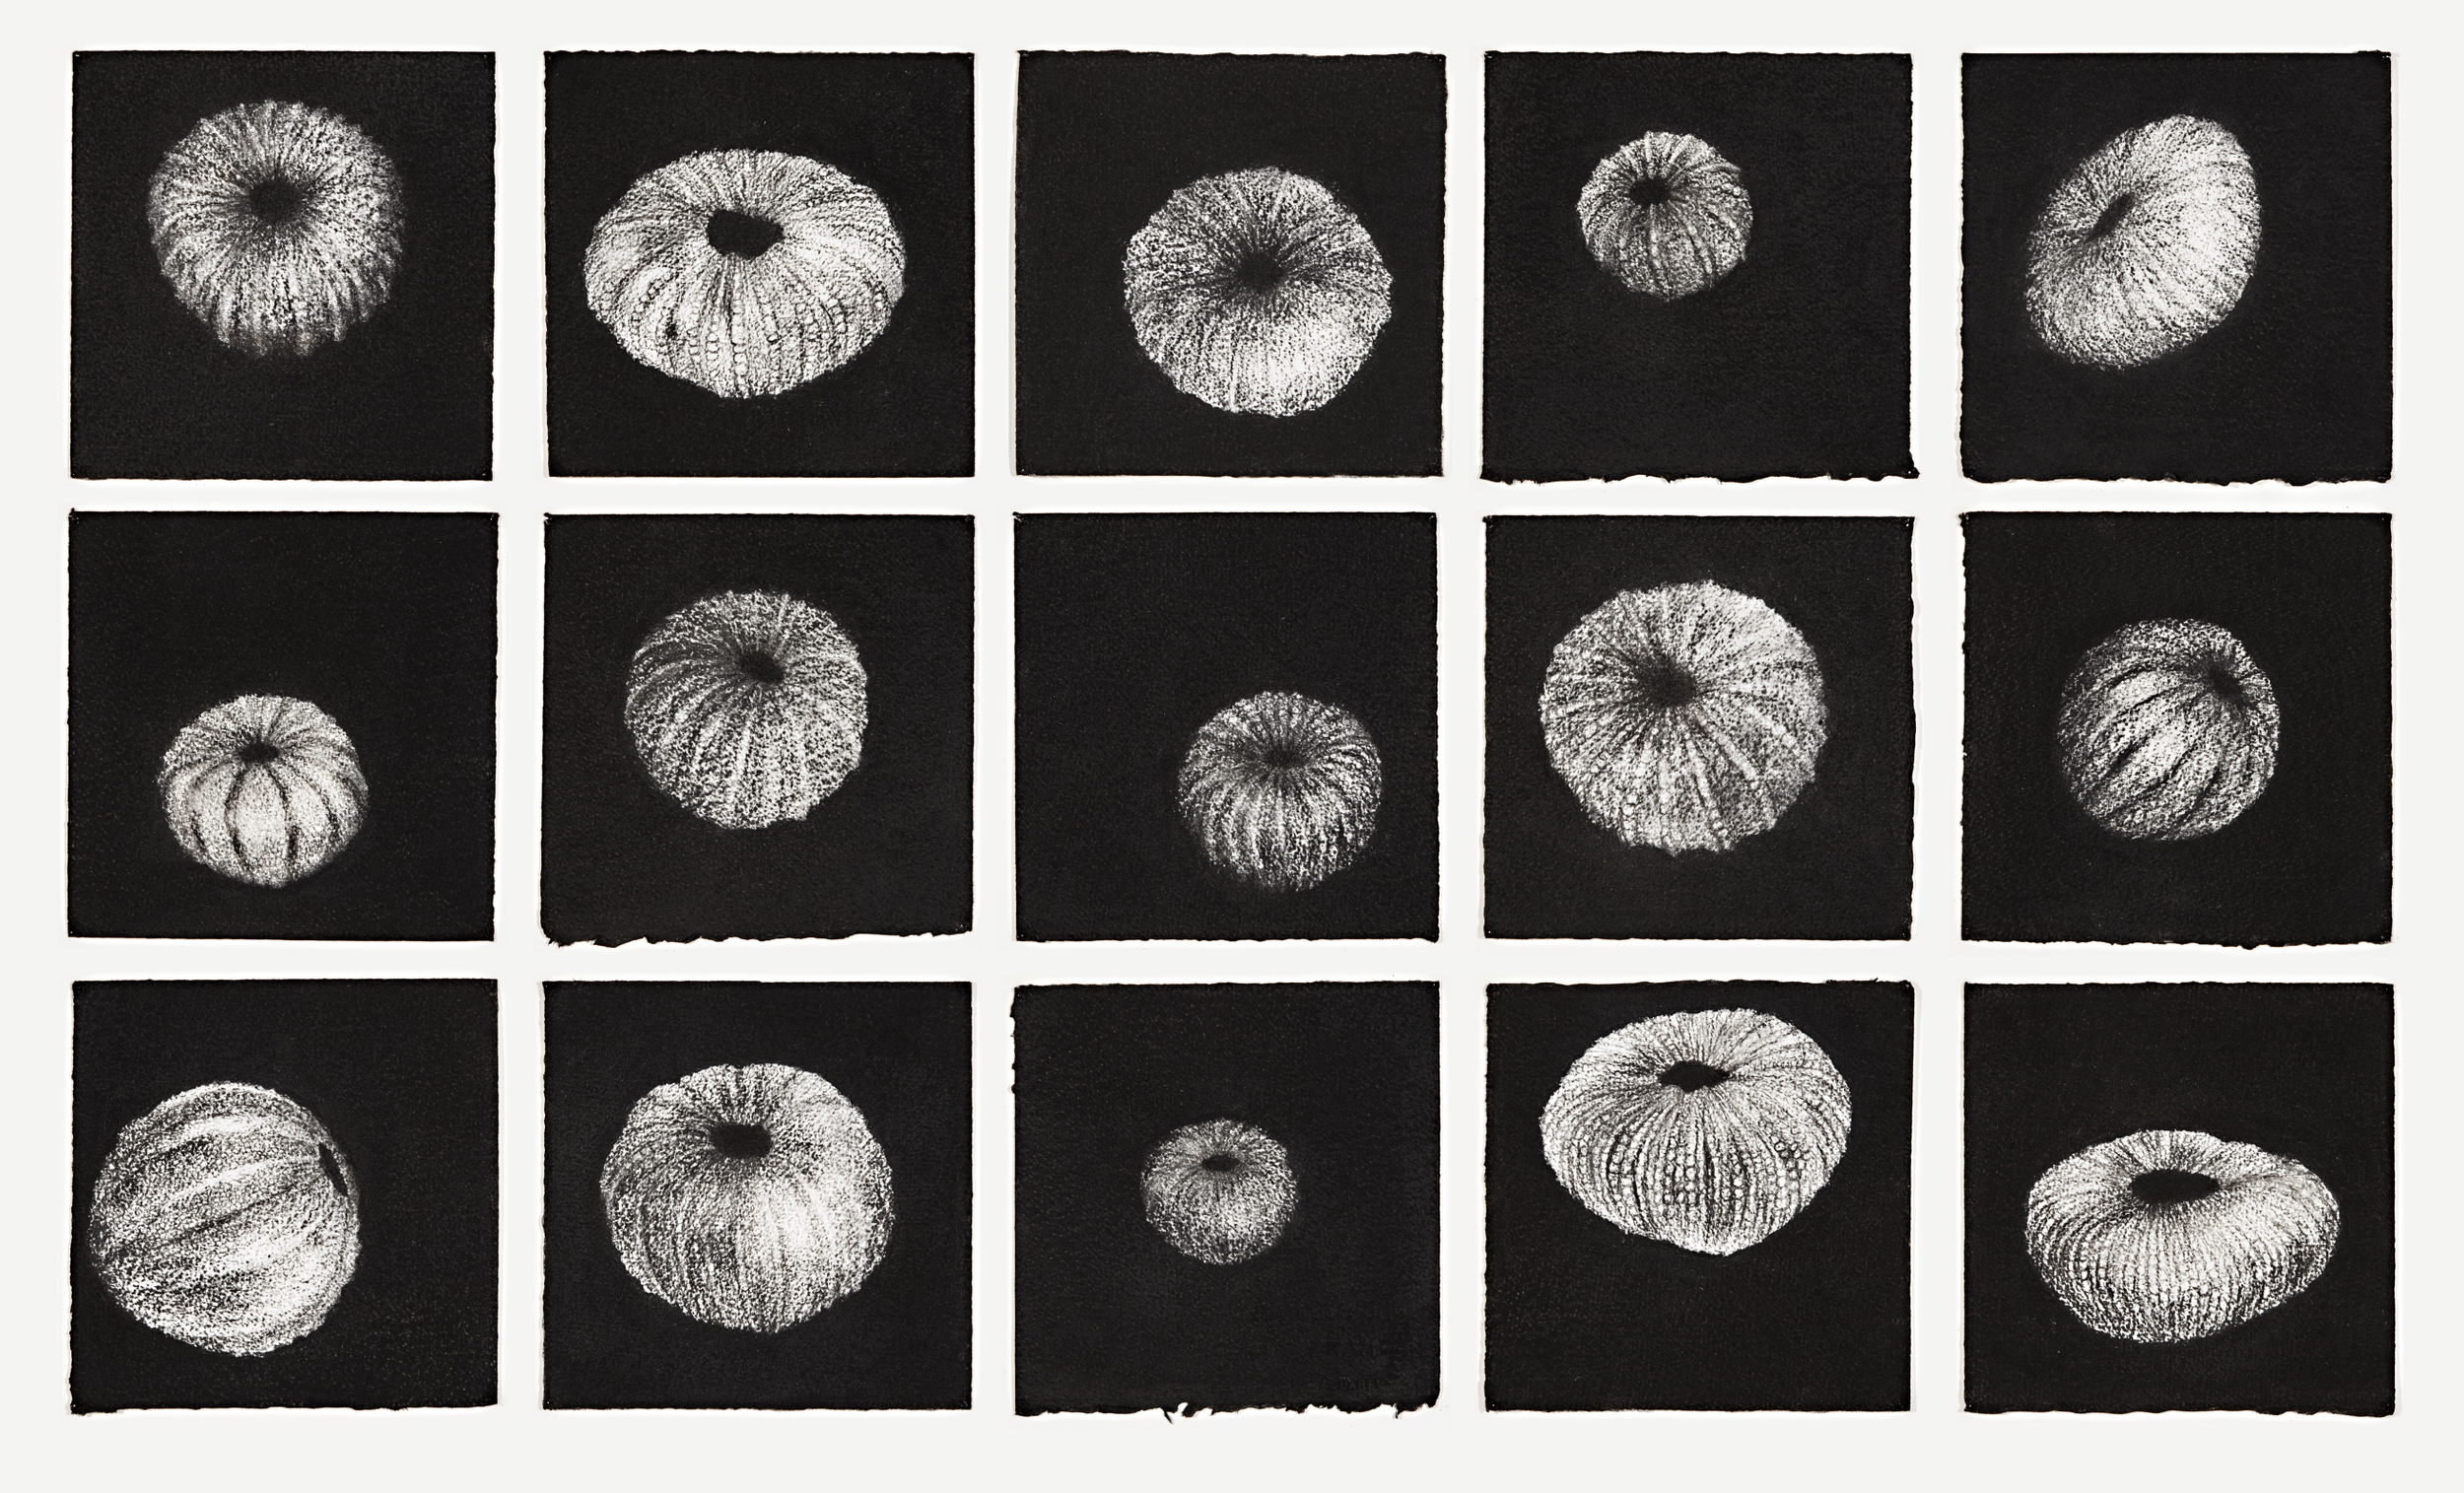 15 urchins, 2014 charcoal on paper, each 18 x 18cm